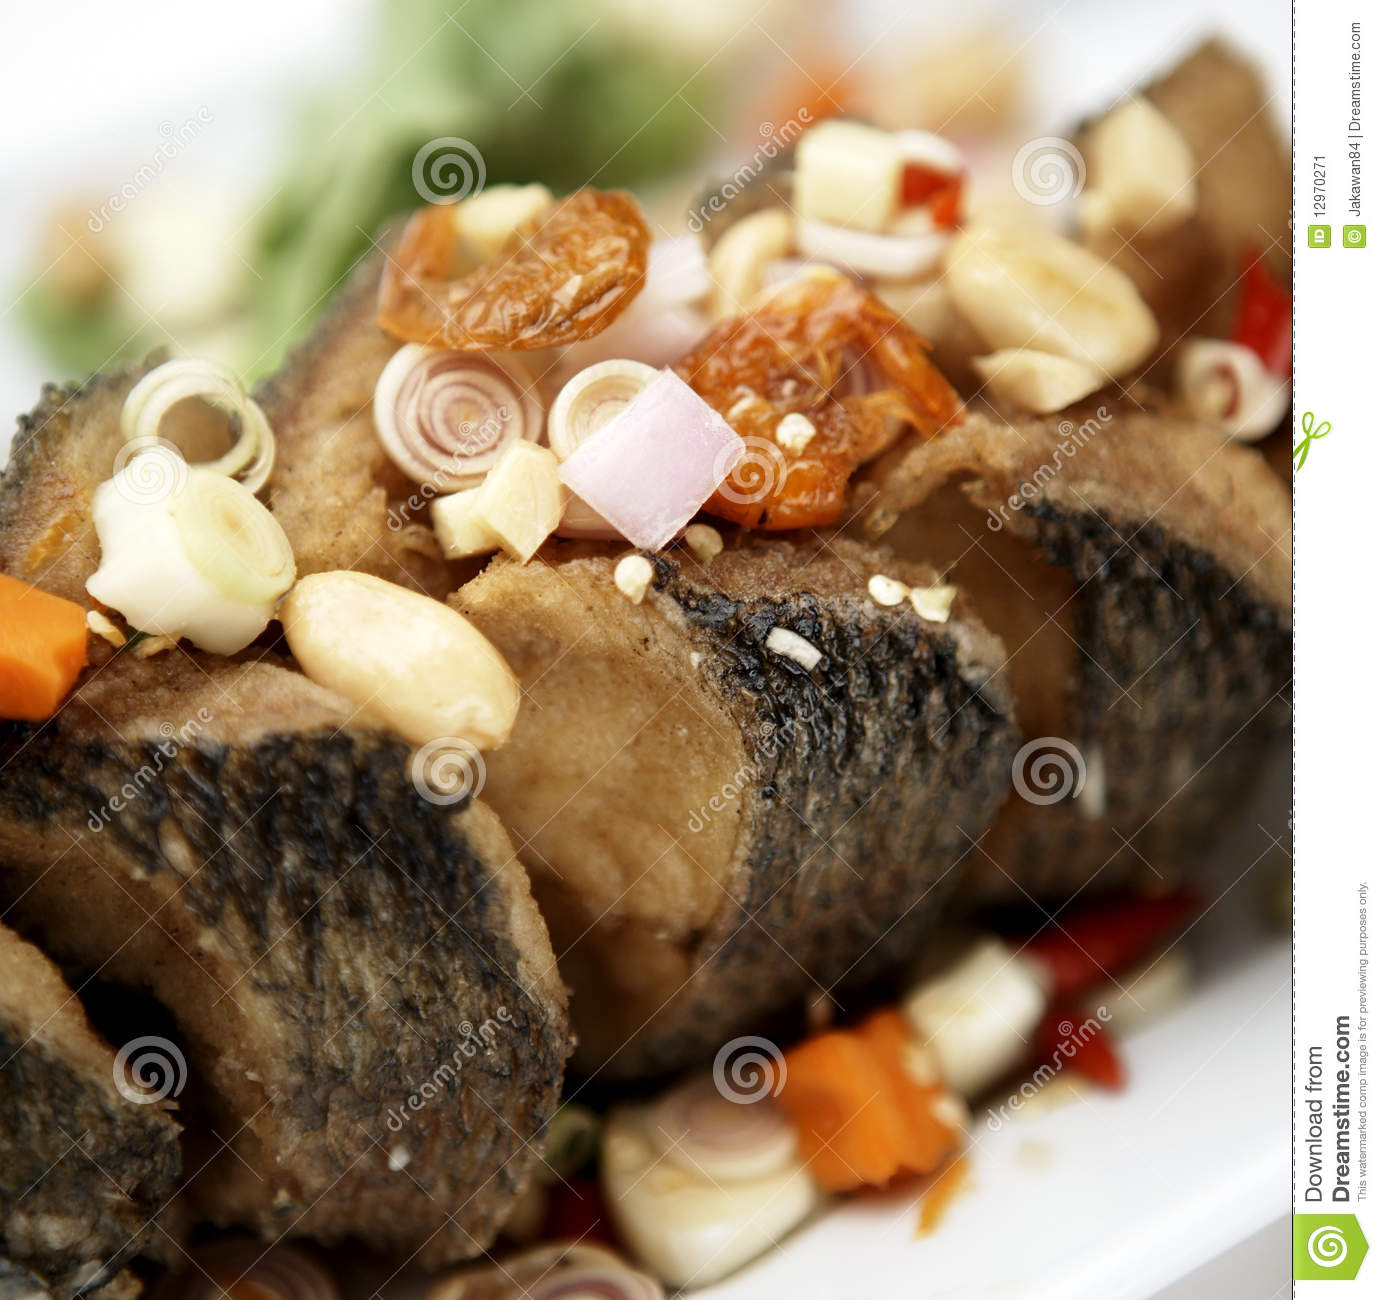 All about fish stock image image 12970271 for All about fish